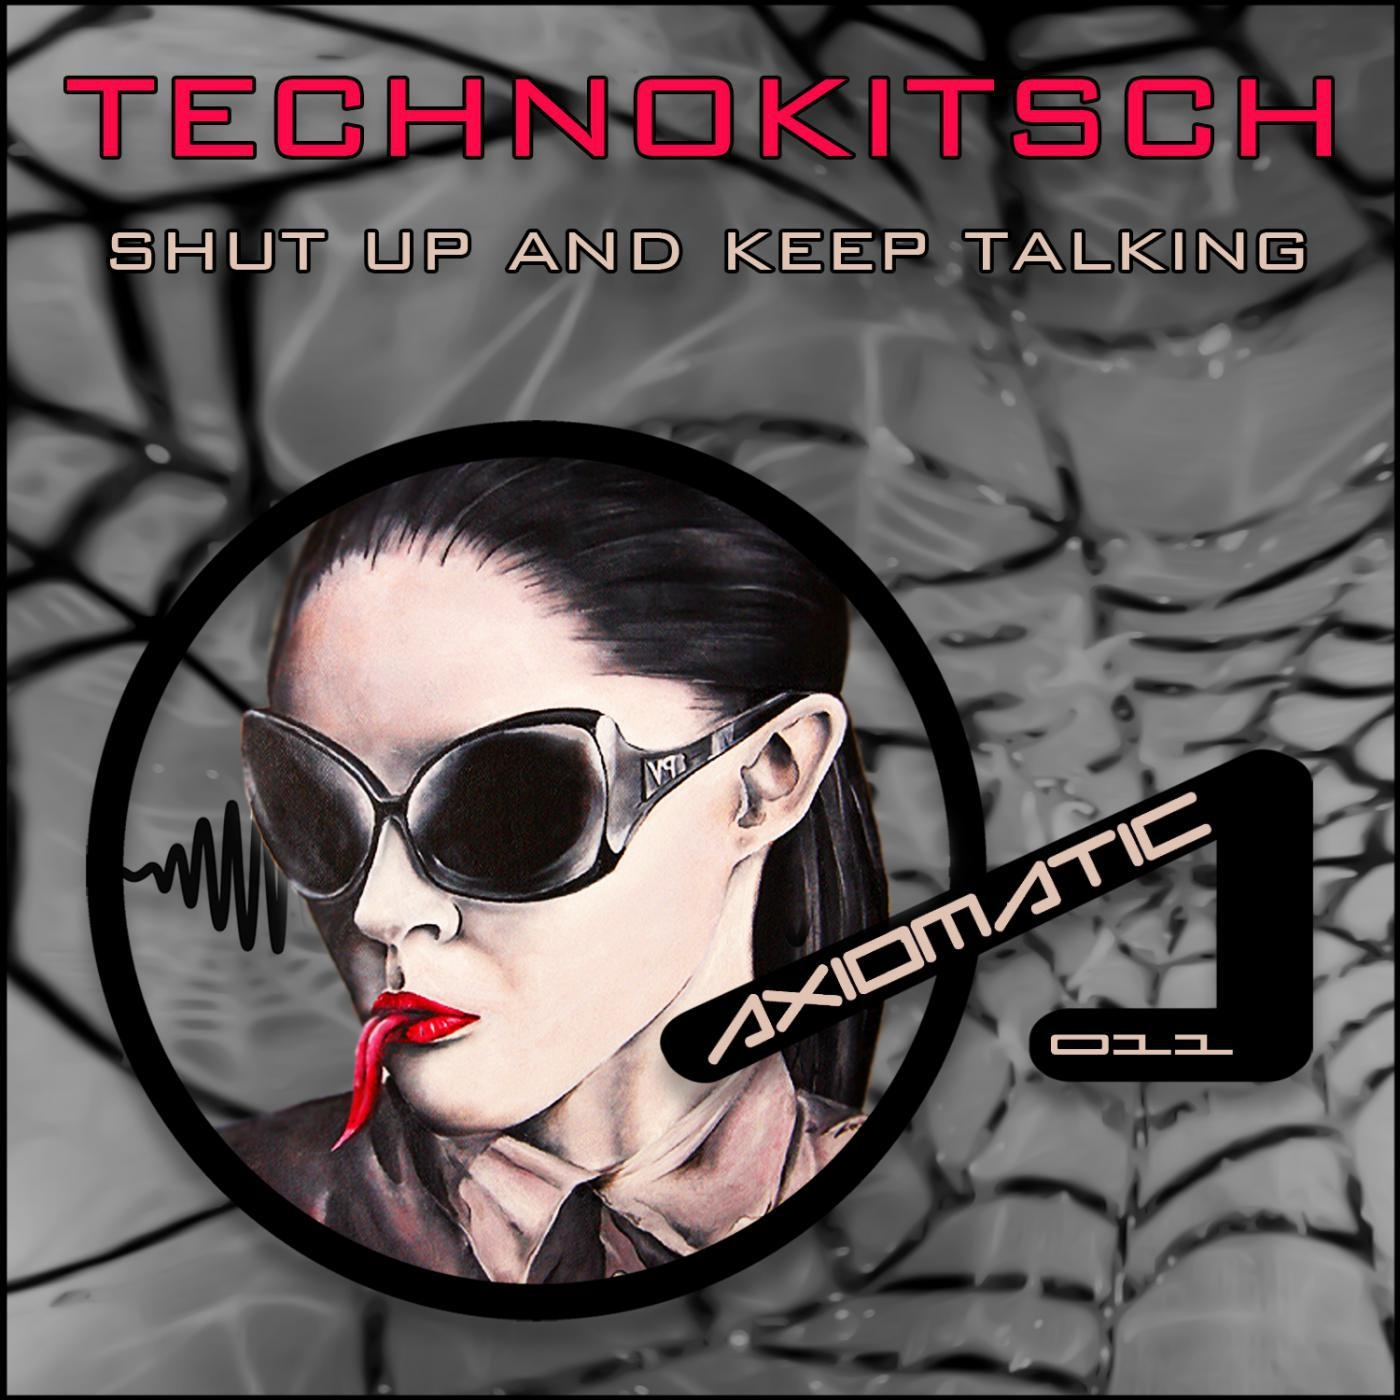 Technokitsch - Shut Up And Keep Talking (Original mix)